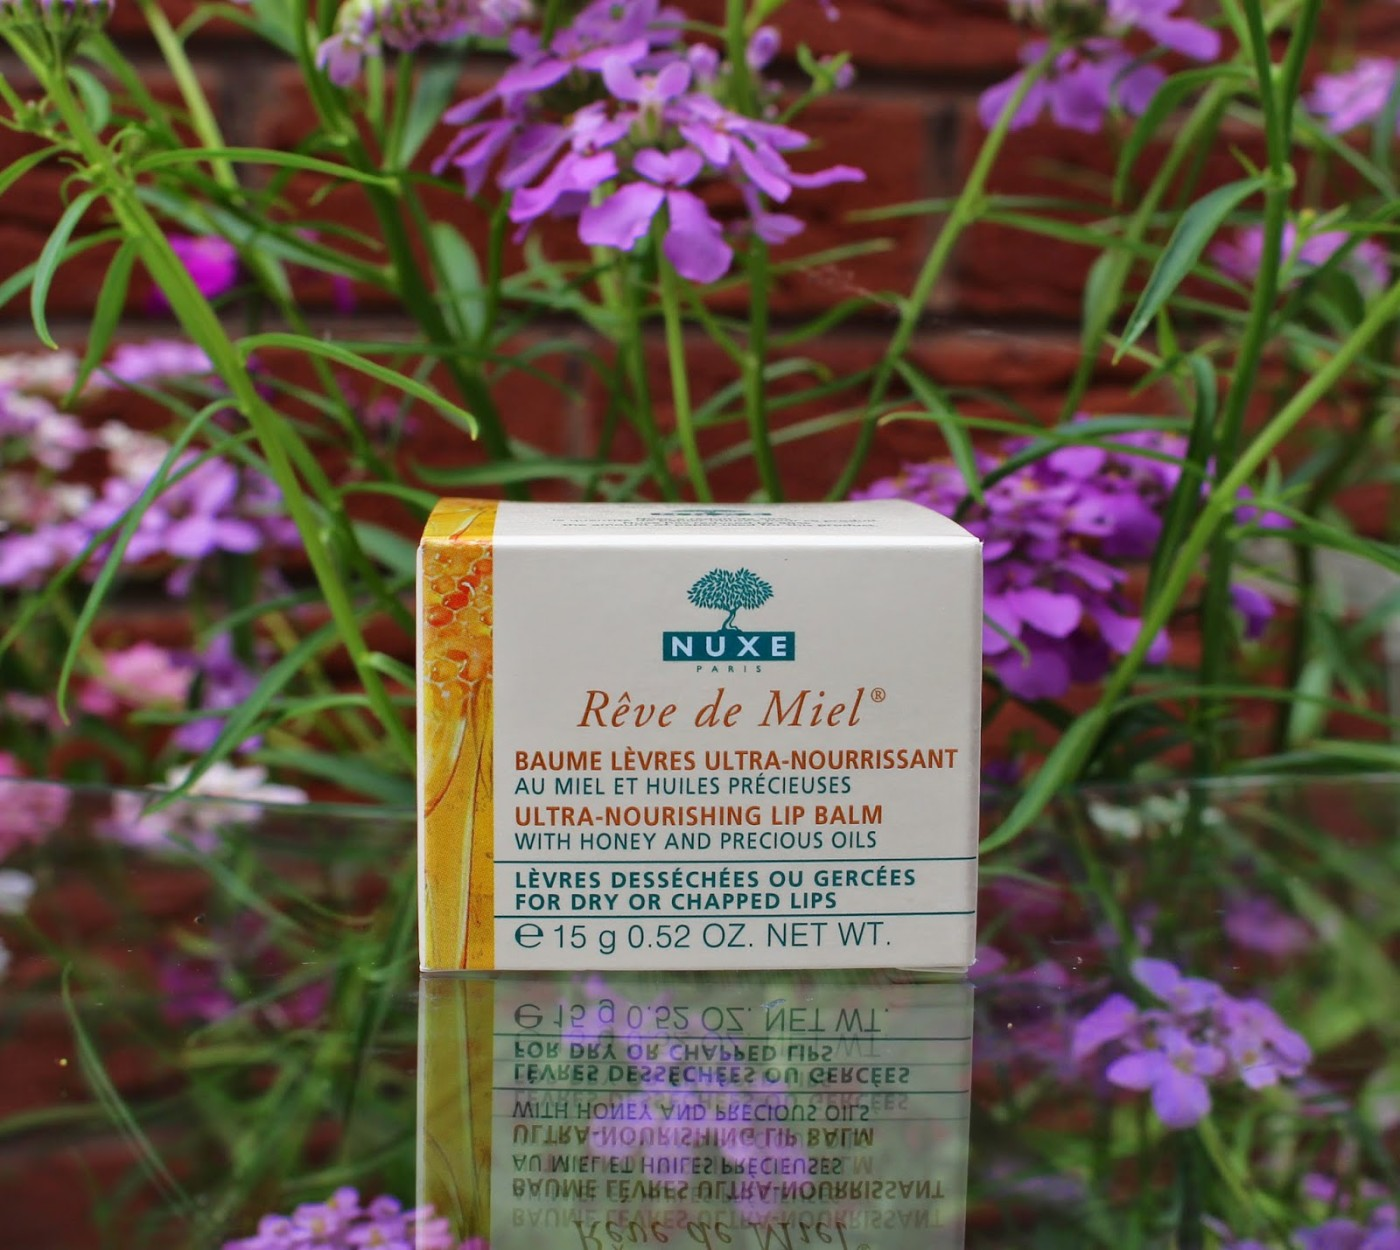 nuxe reve de miel, french pharmacy, nuxe, lip balm, dry lip savour, review, through chelsea's eyes,